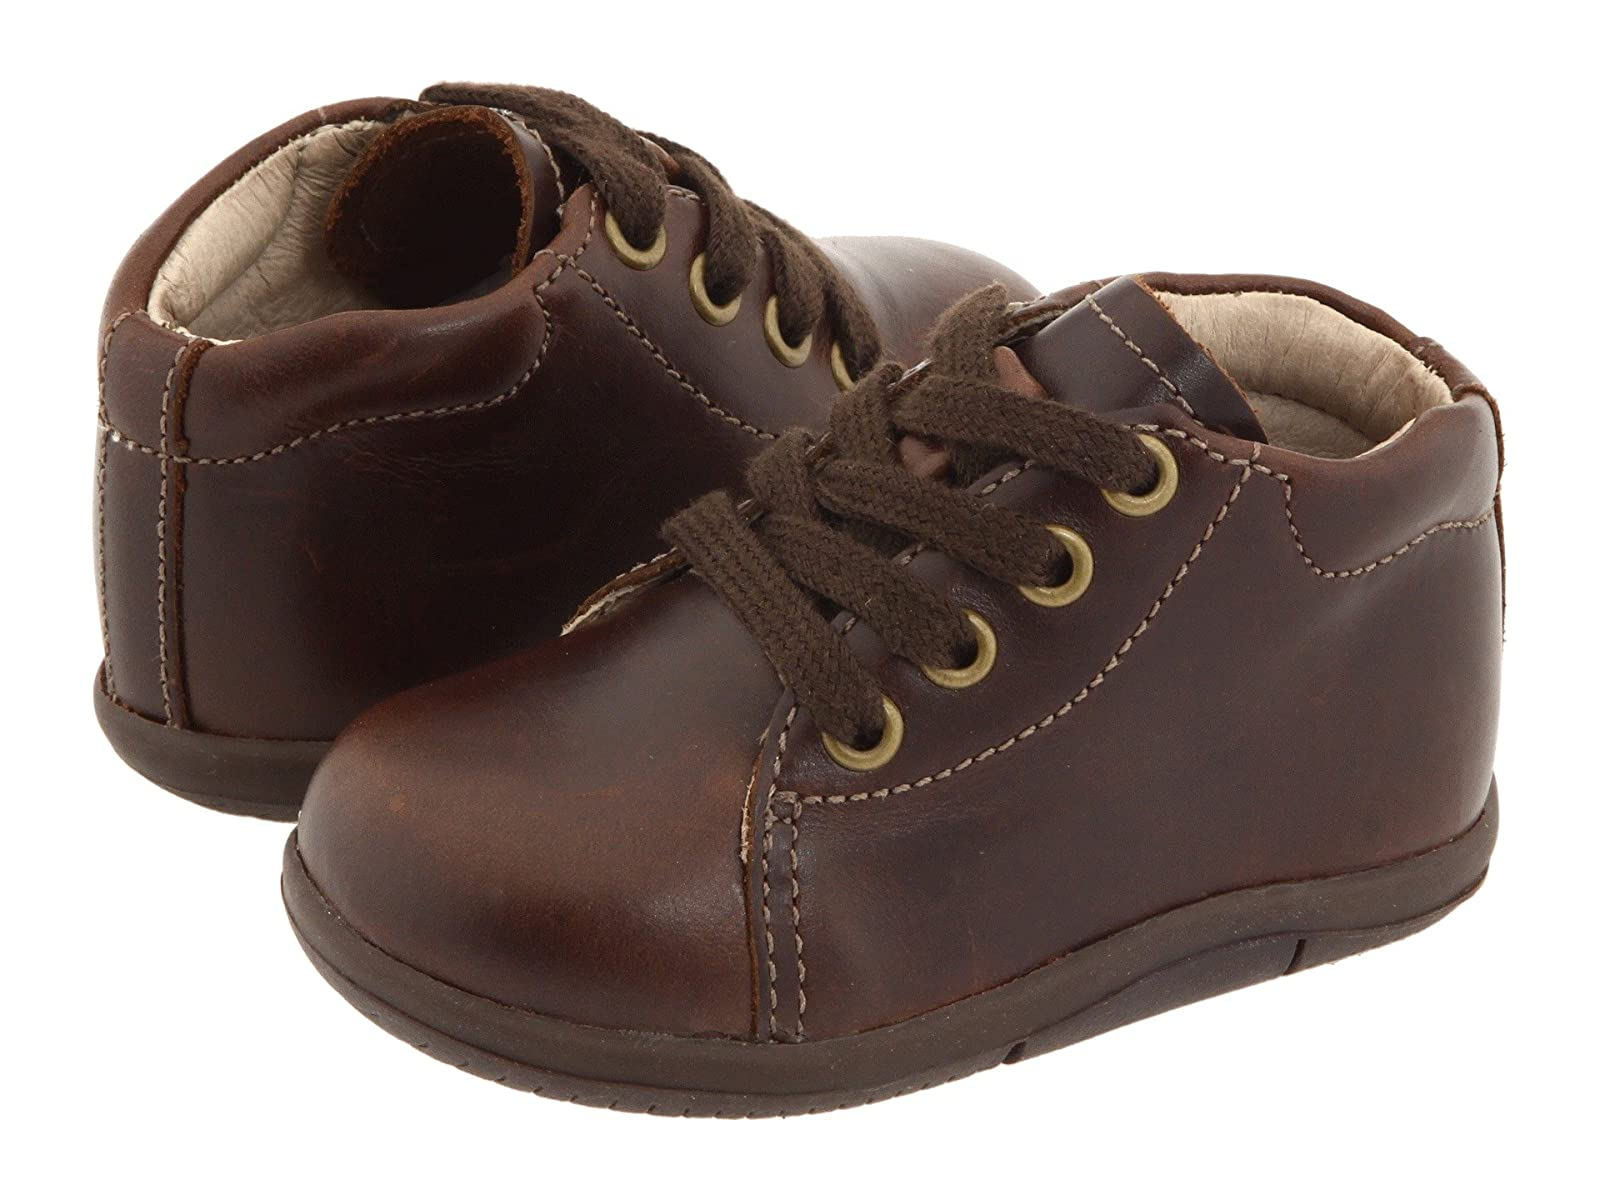 Stride Rite SRT Elliot (Infant/Toddler)Atmospheric grades have affordable shoes